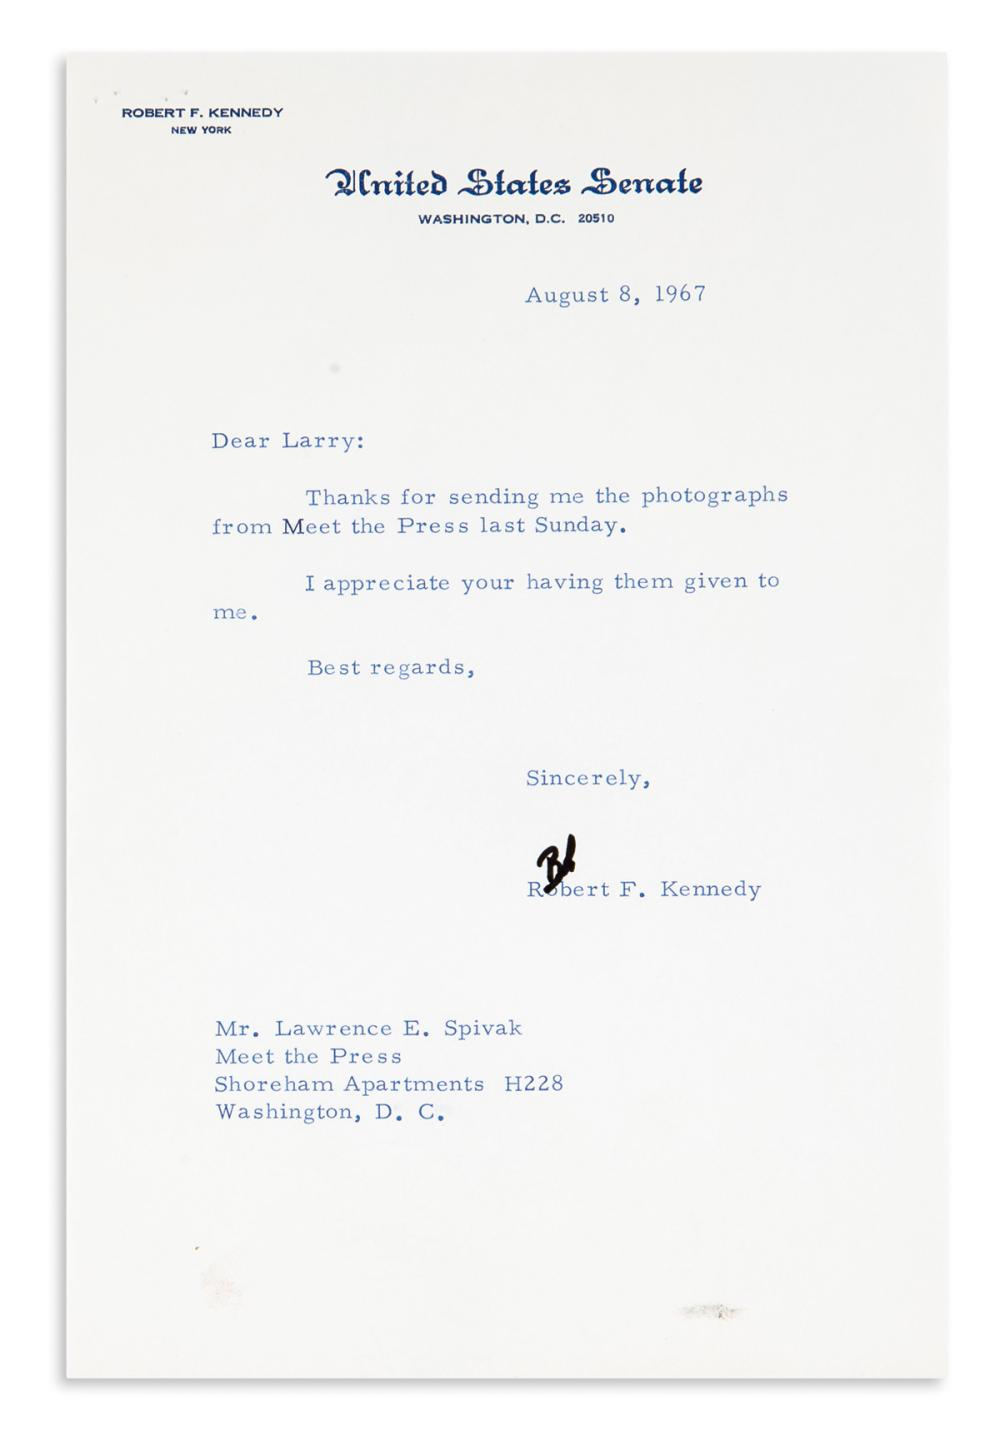 (PRESIDENTS.) Group of 5 Typed Letters Signed, to Meet the Press co-founder Lawrence E. Spivak: Robert F. Kennedy * Richard Nixon (3) *